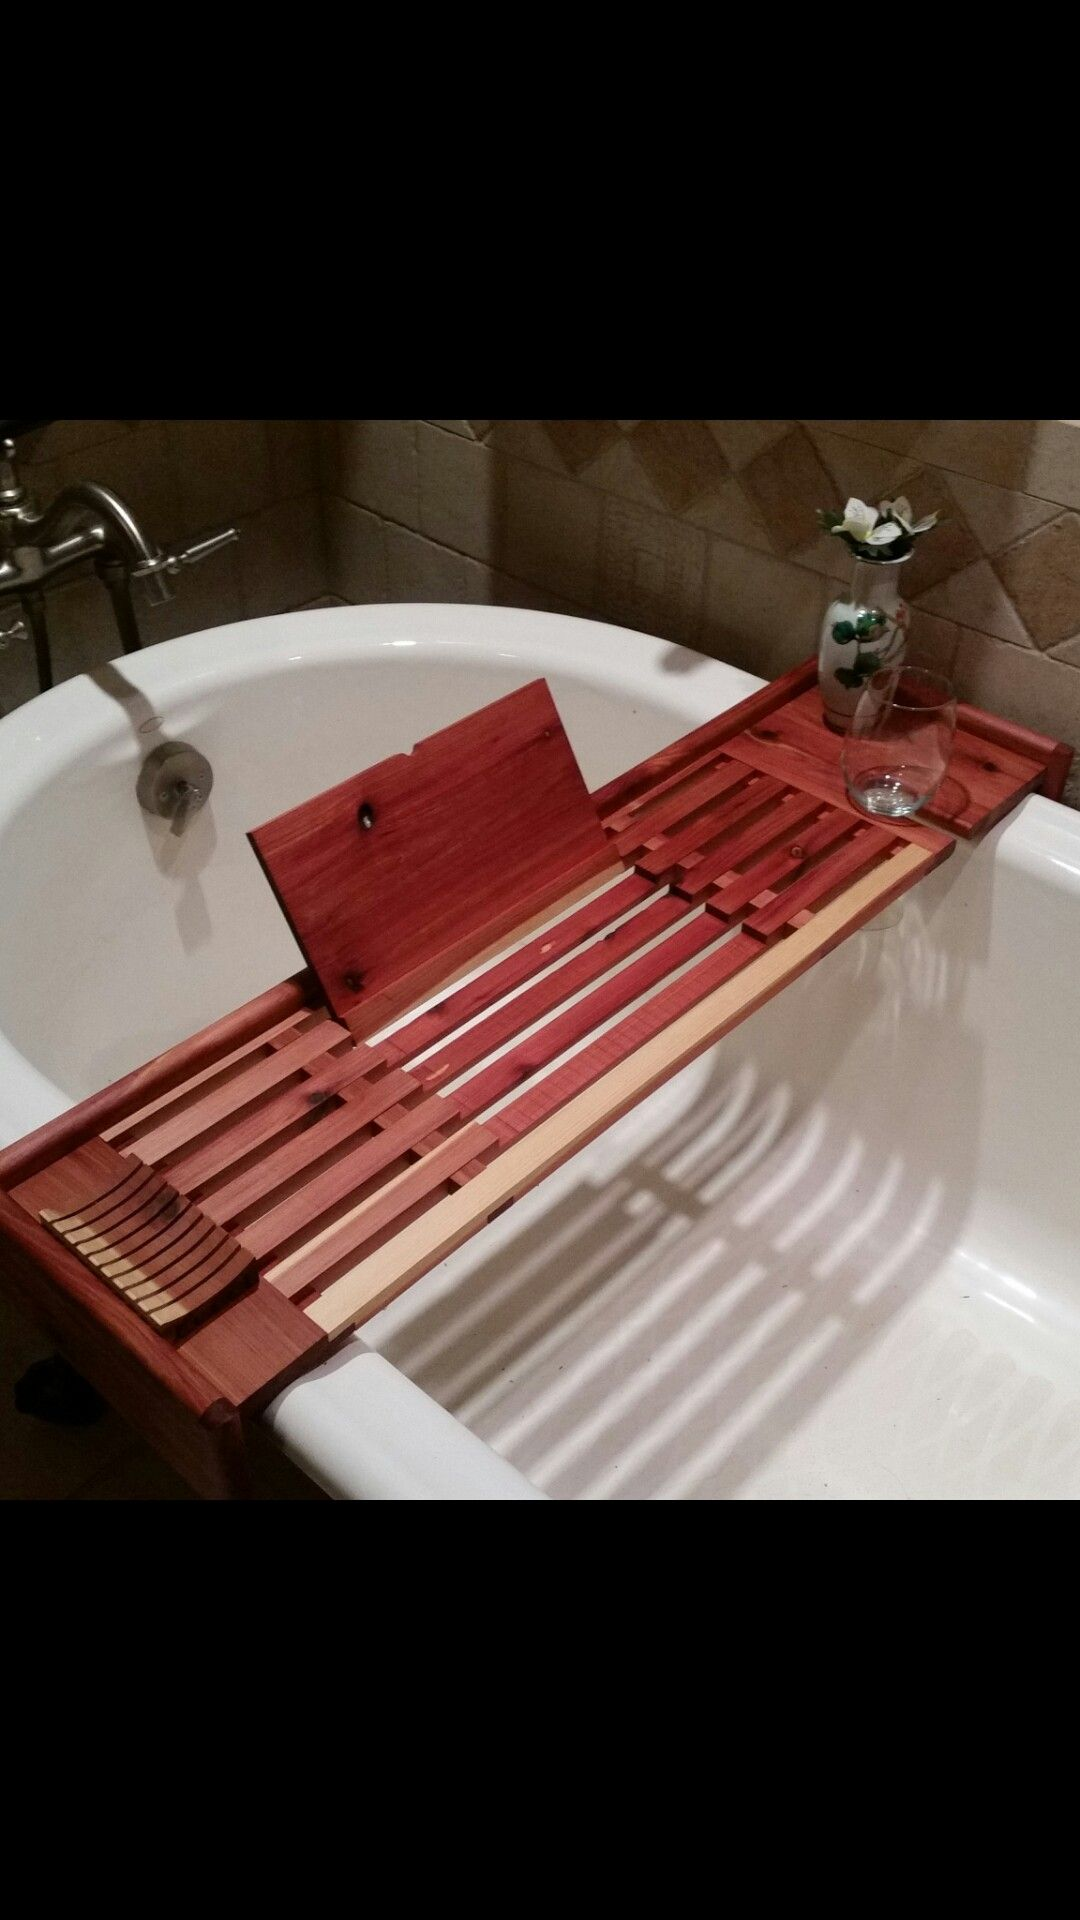 Bath Table I Built From Cedar It Spans Three Feet And Features A Fold Down Book Rest Wine Glass Holder And Cove Molde Wine Glass Holder Bath Table Book Rest